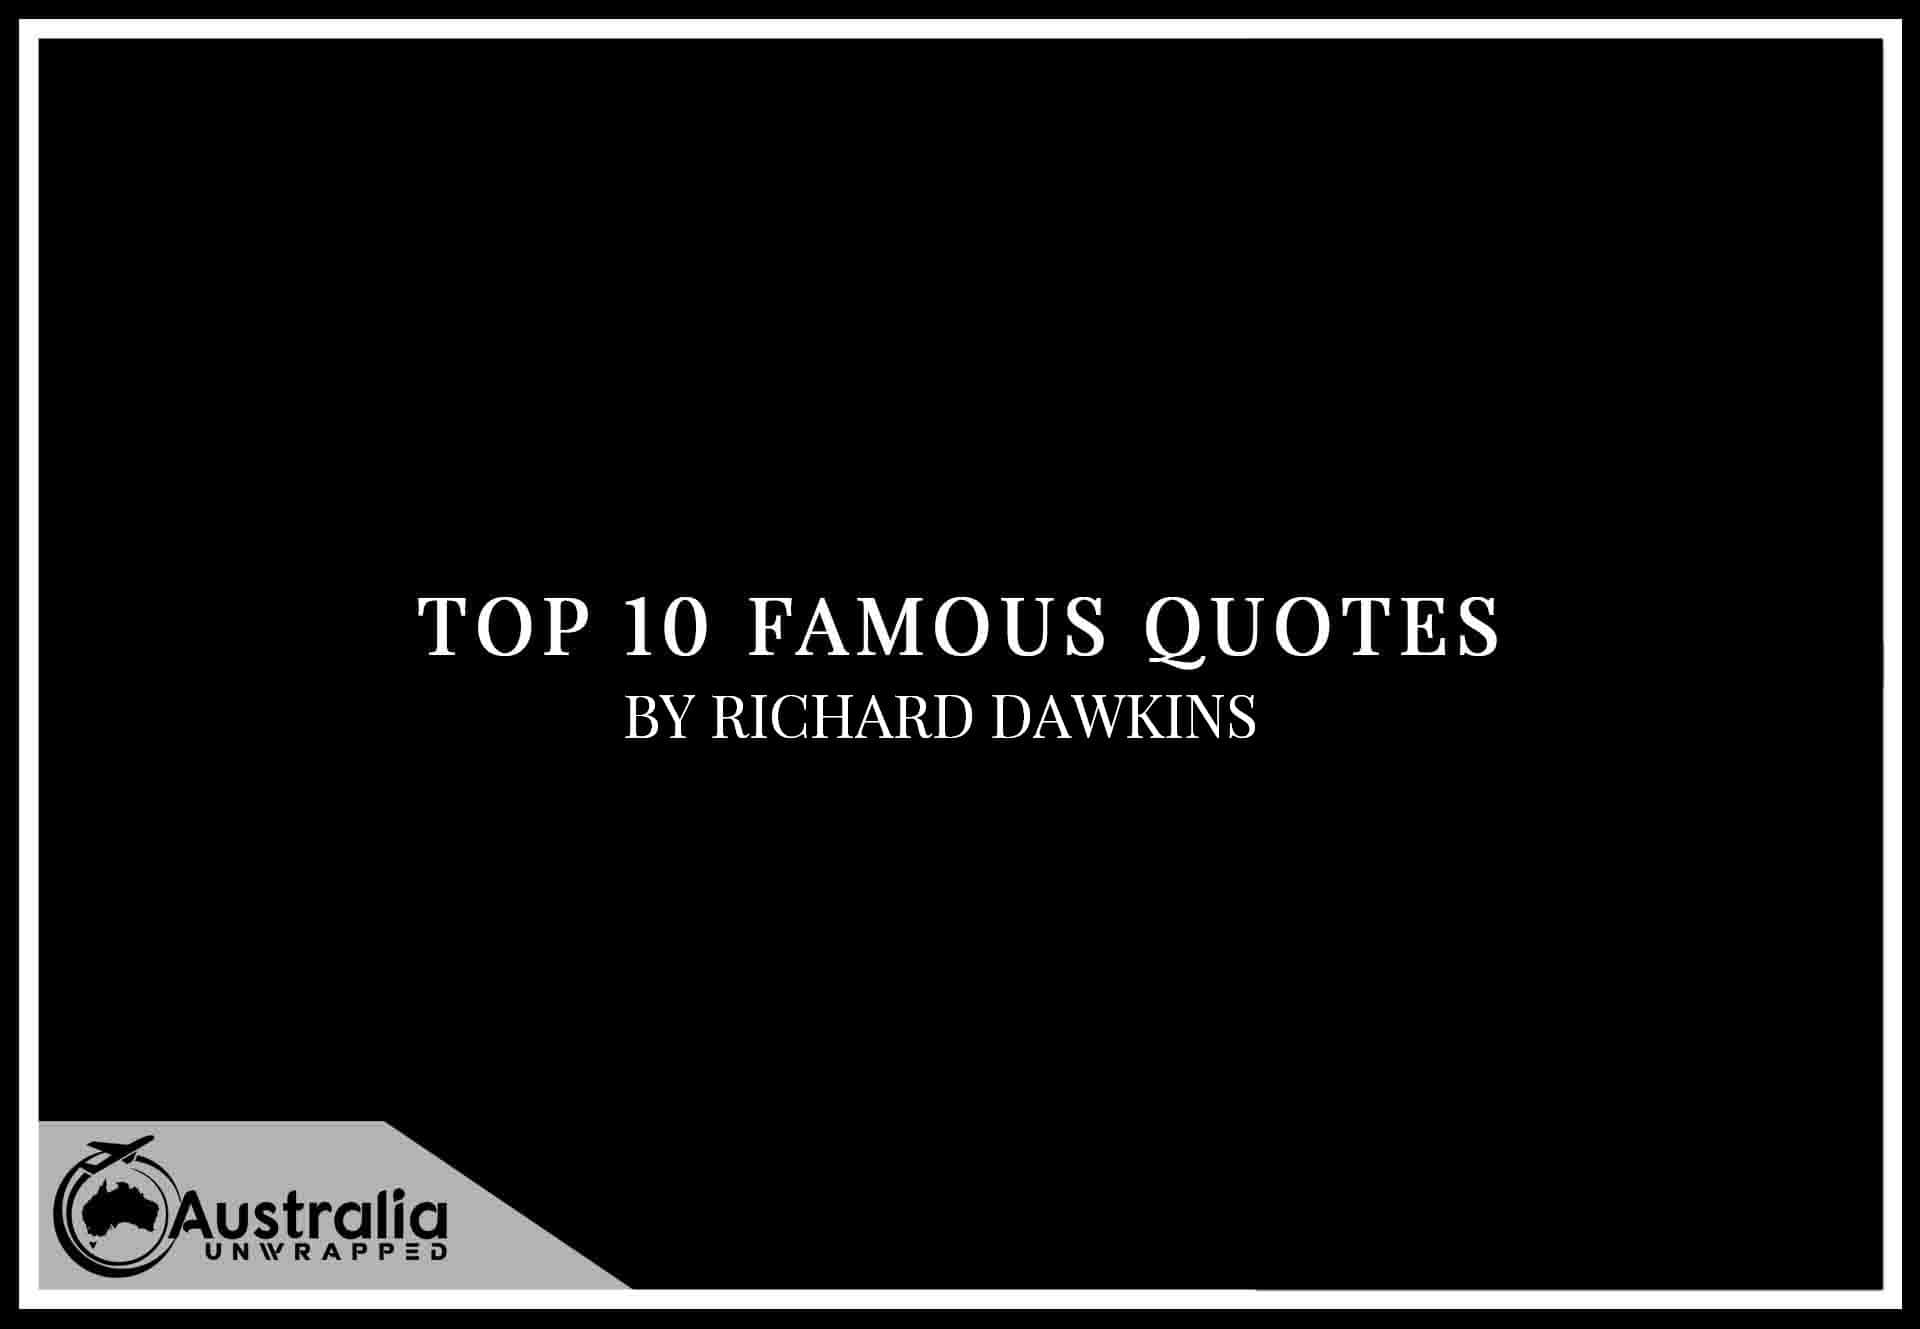 Top 10 Famous Quotes by Author Richard Dawkins